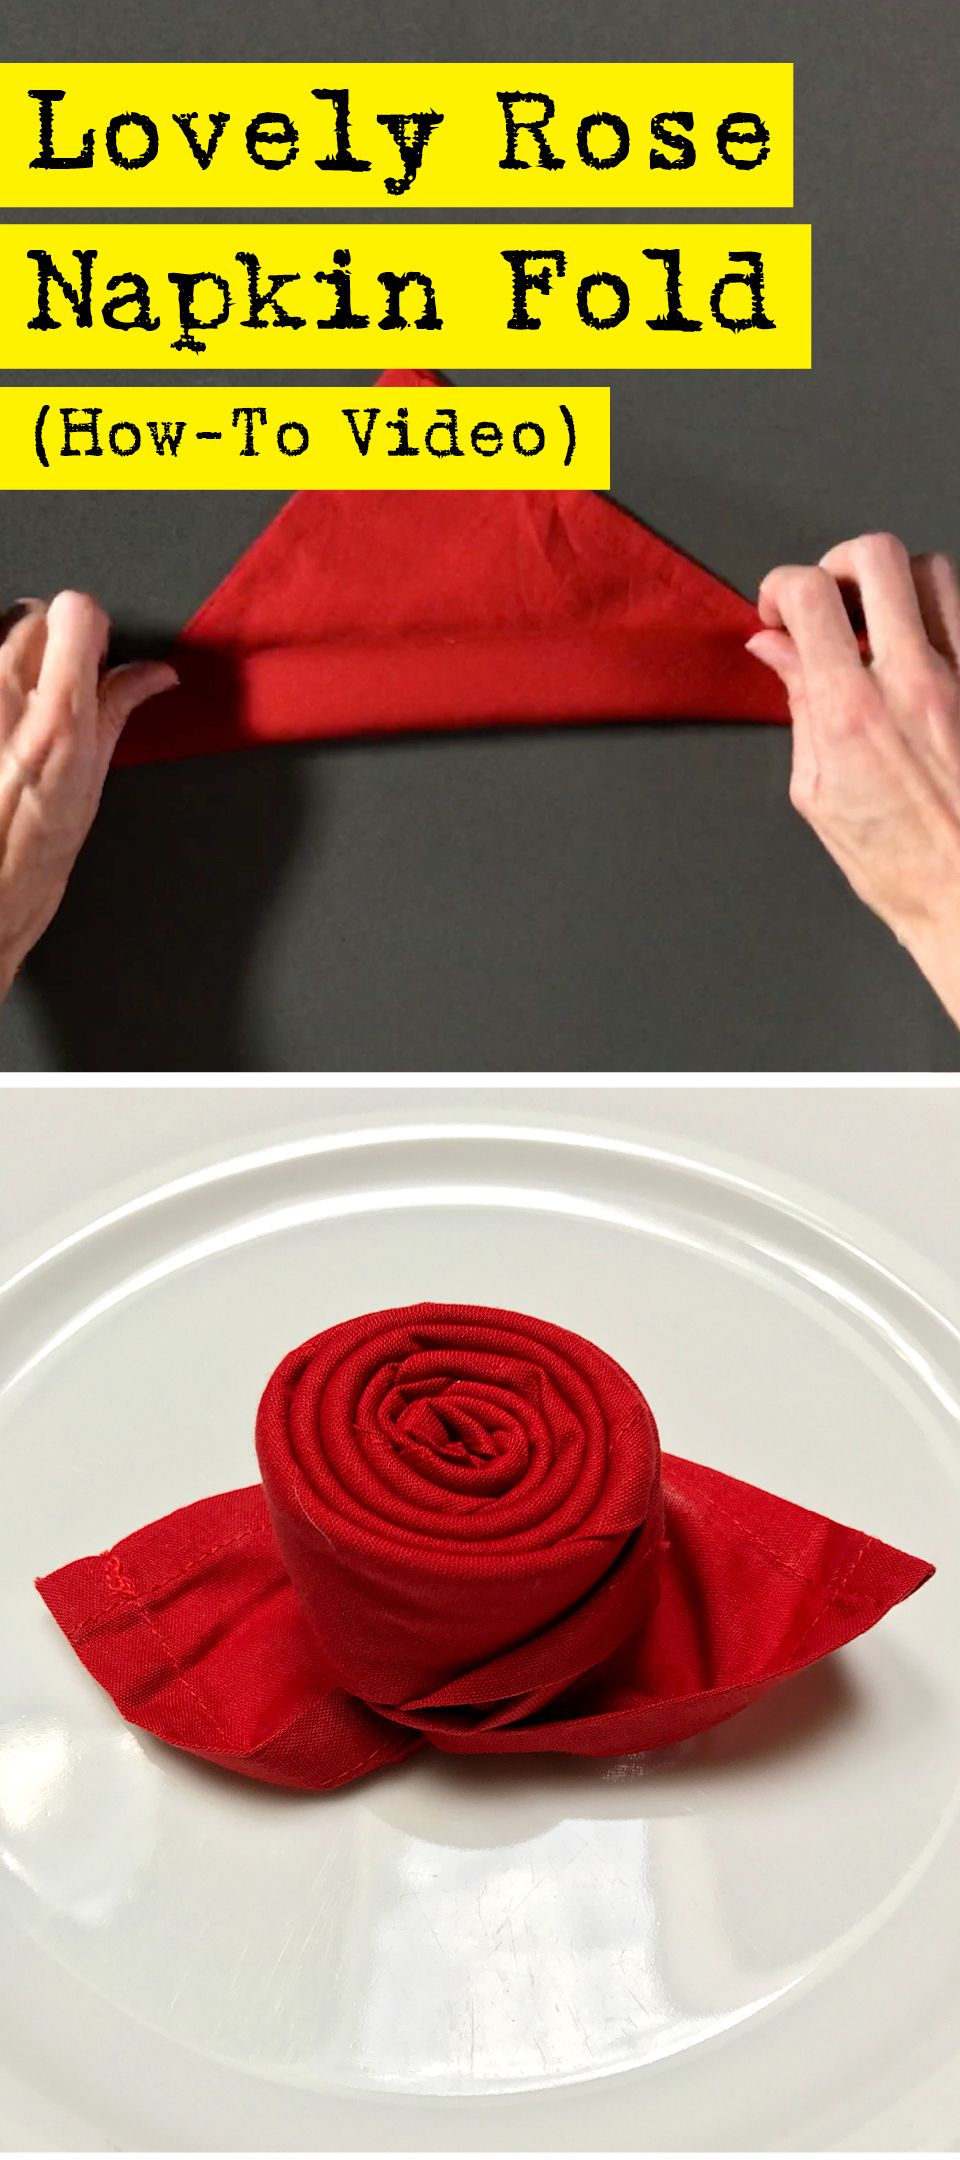 Impress Your Dinner Guests With This Lovely Rose Napkin Fold Napkin Folding Dinner Napkins Napkin Rose